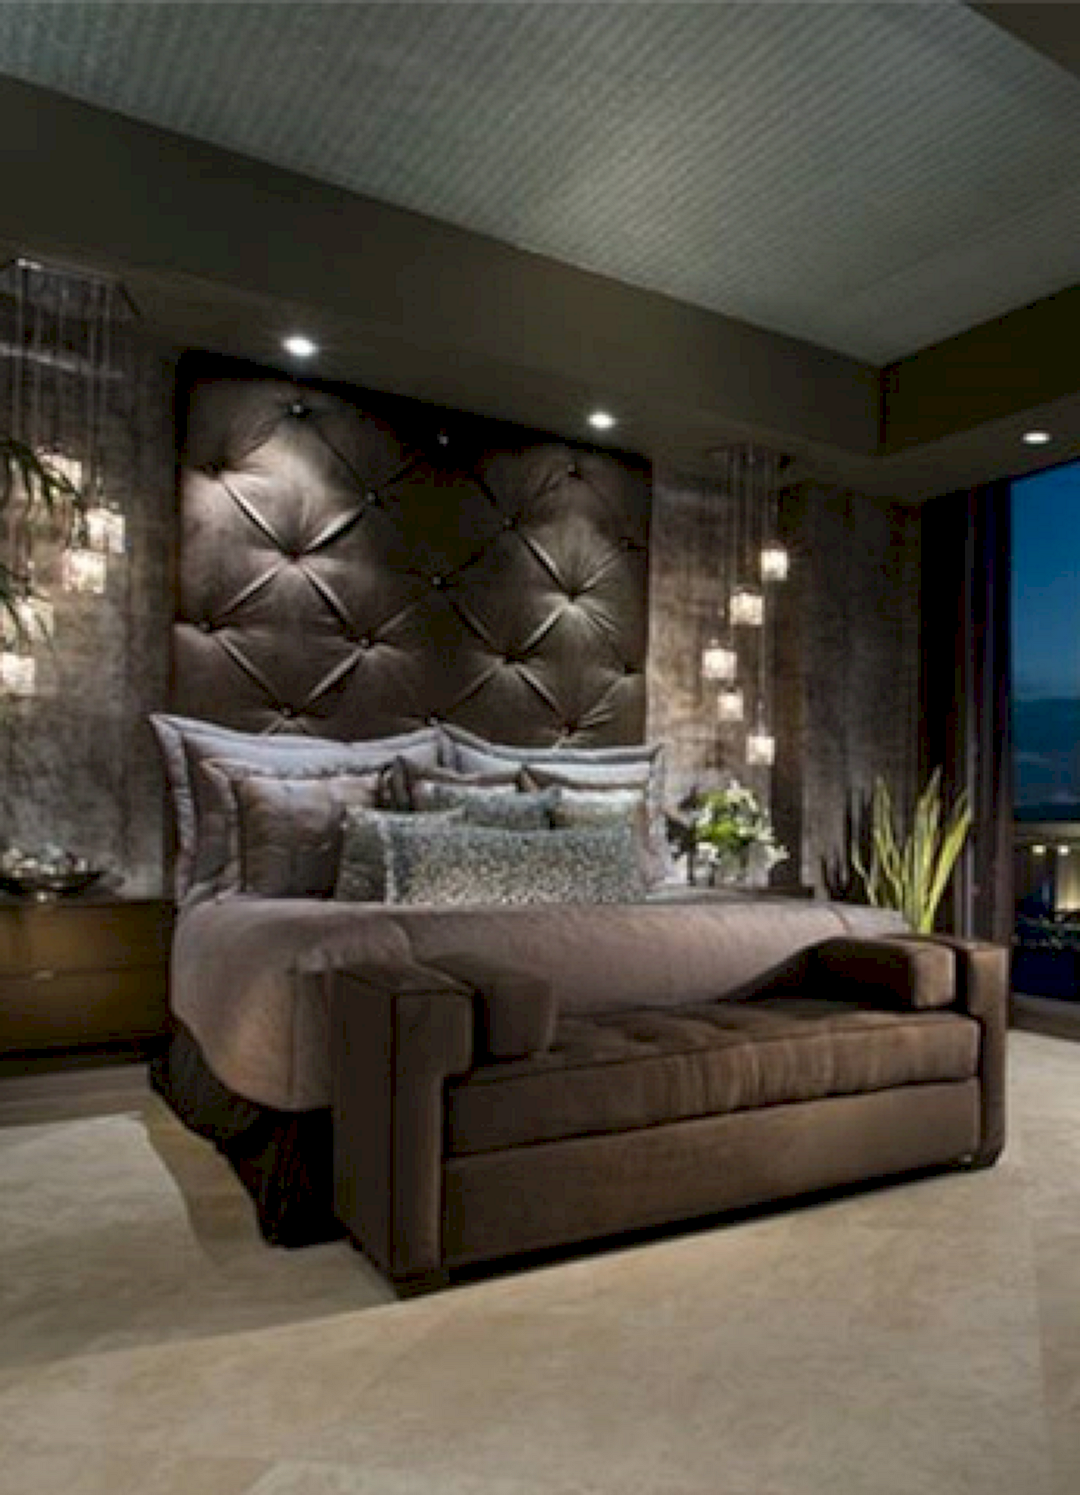 Awesome 13 DIY Rustic & Romantic Master Bedroom Ideas On a ... on Luxury Bedroom Ideas On A Budget  id=97377